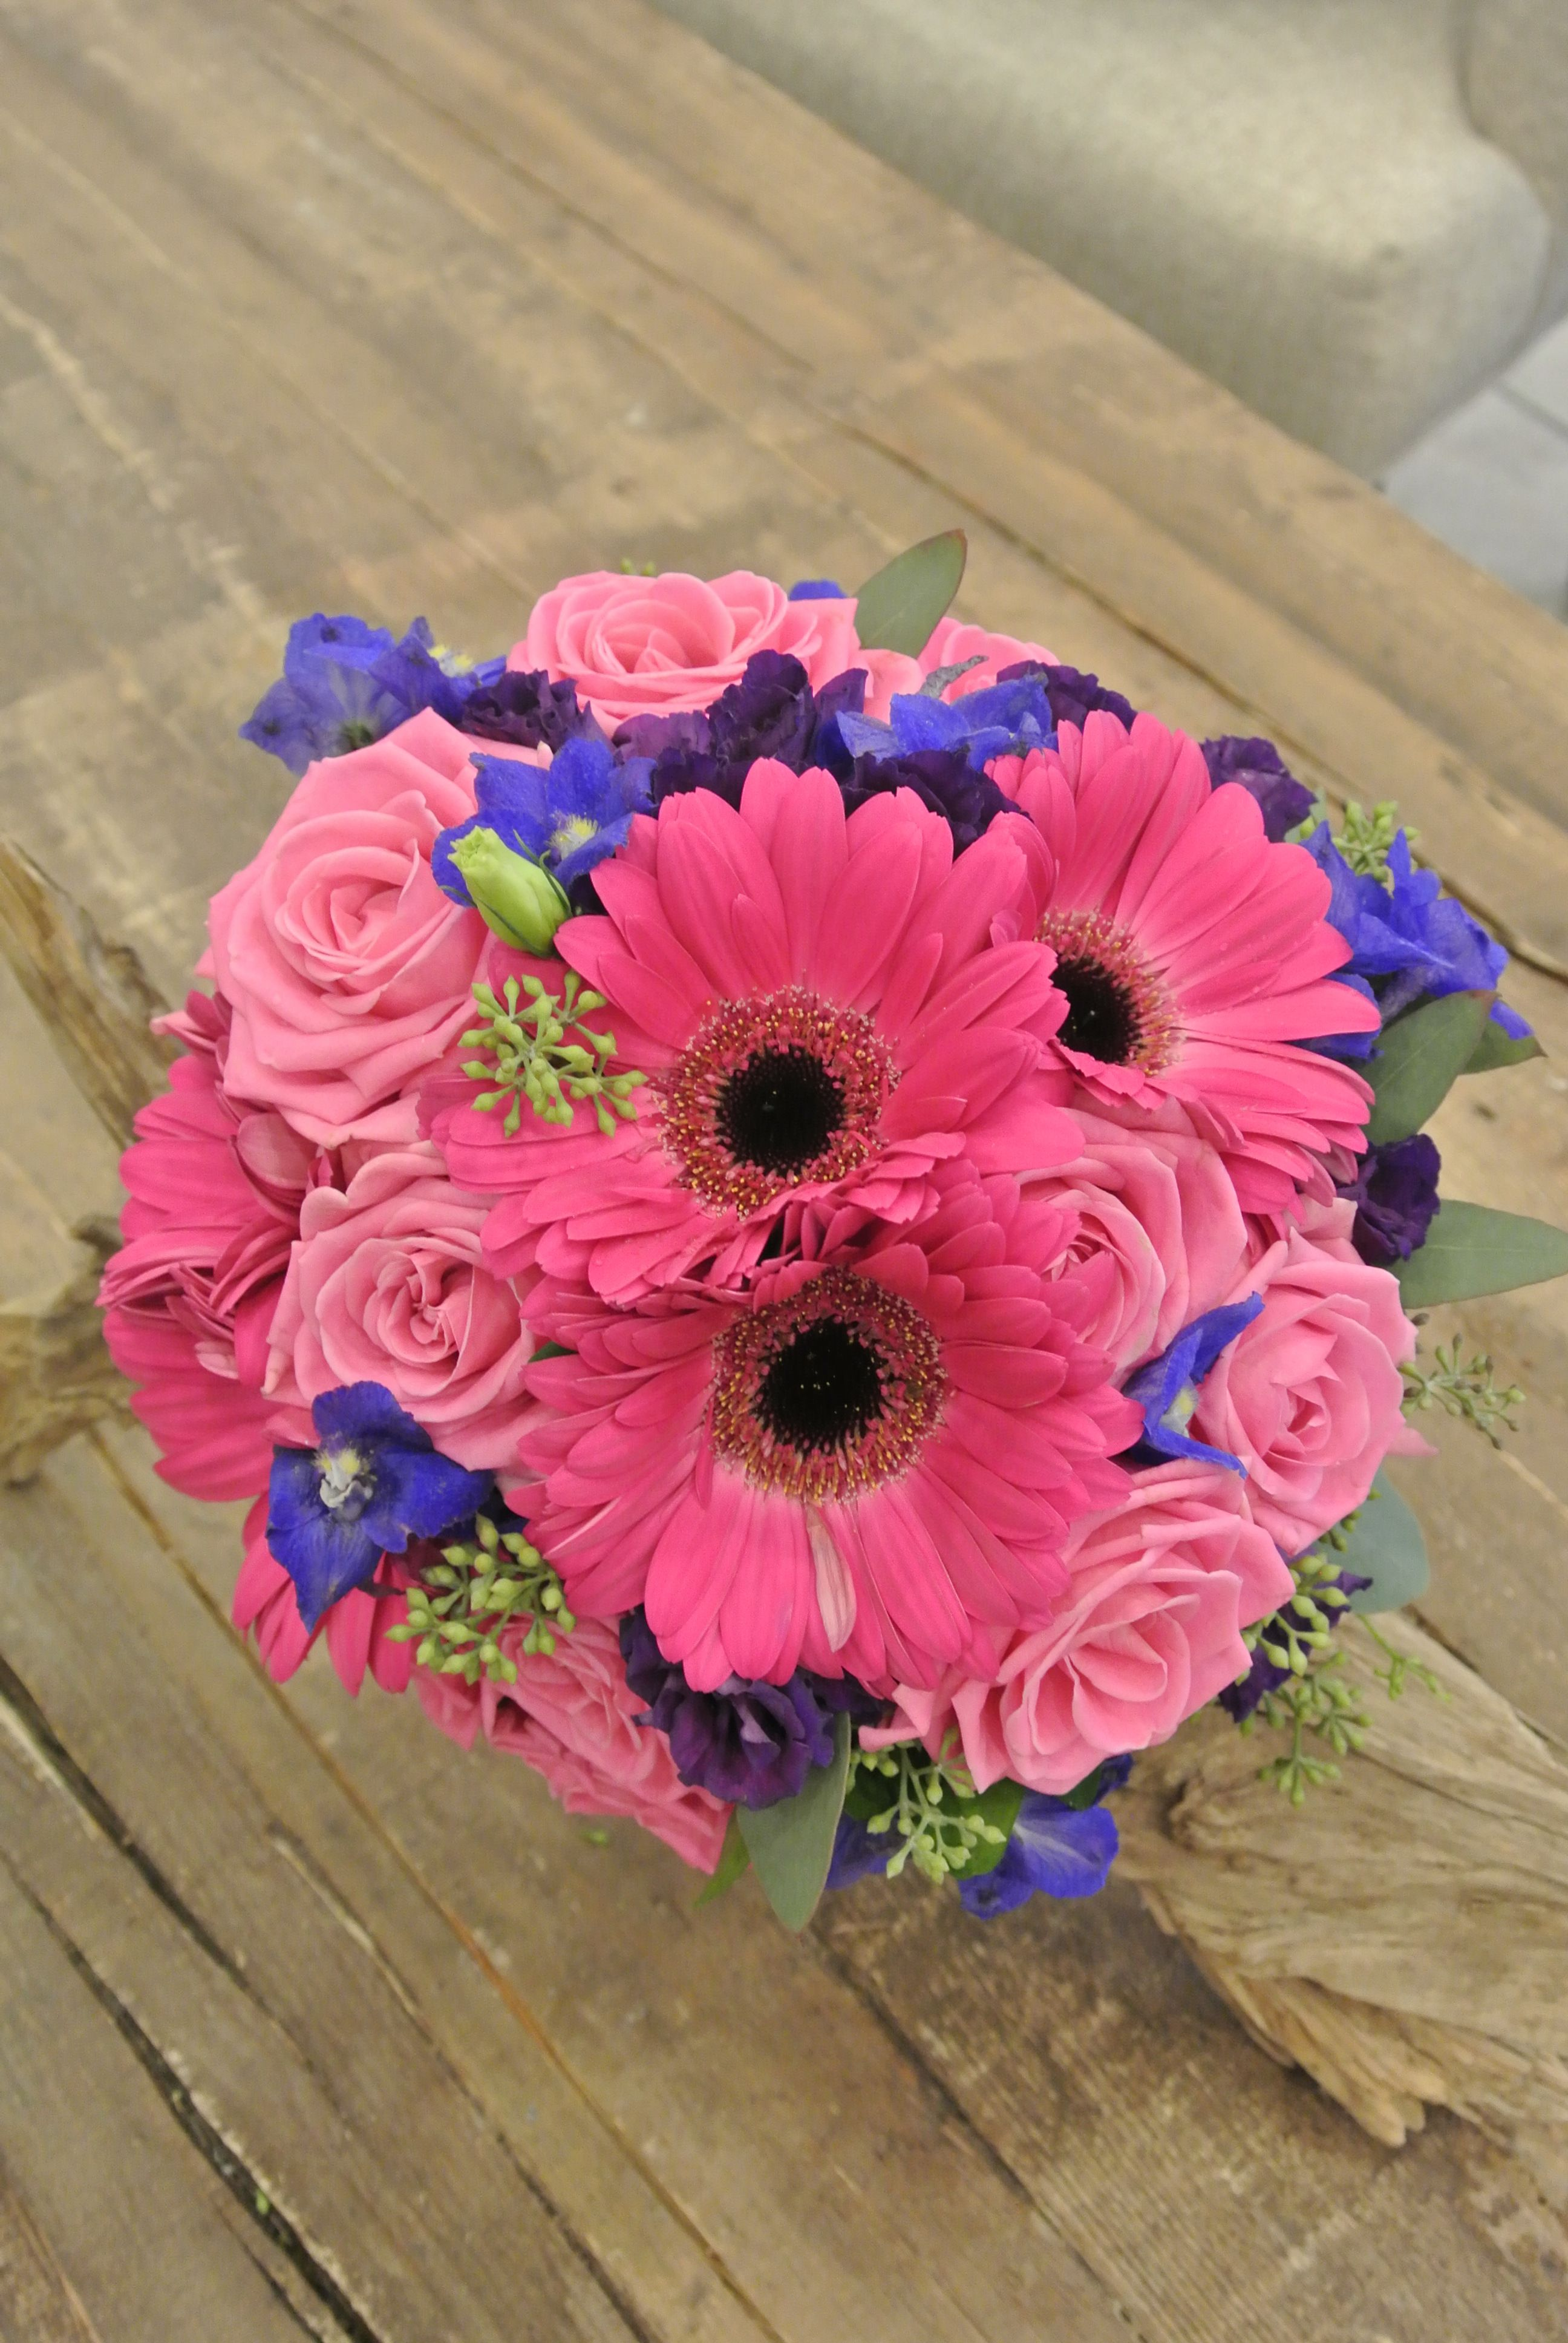 Pink & Blue bridal bouquet with gerbera daisy,delphinium